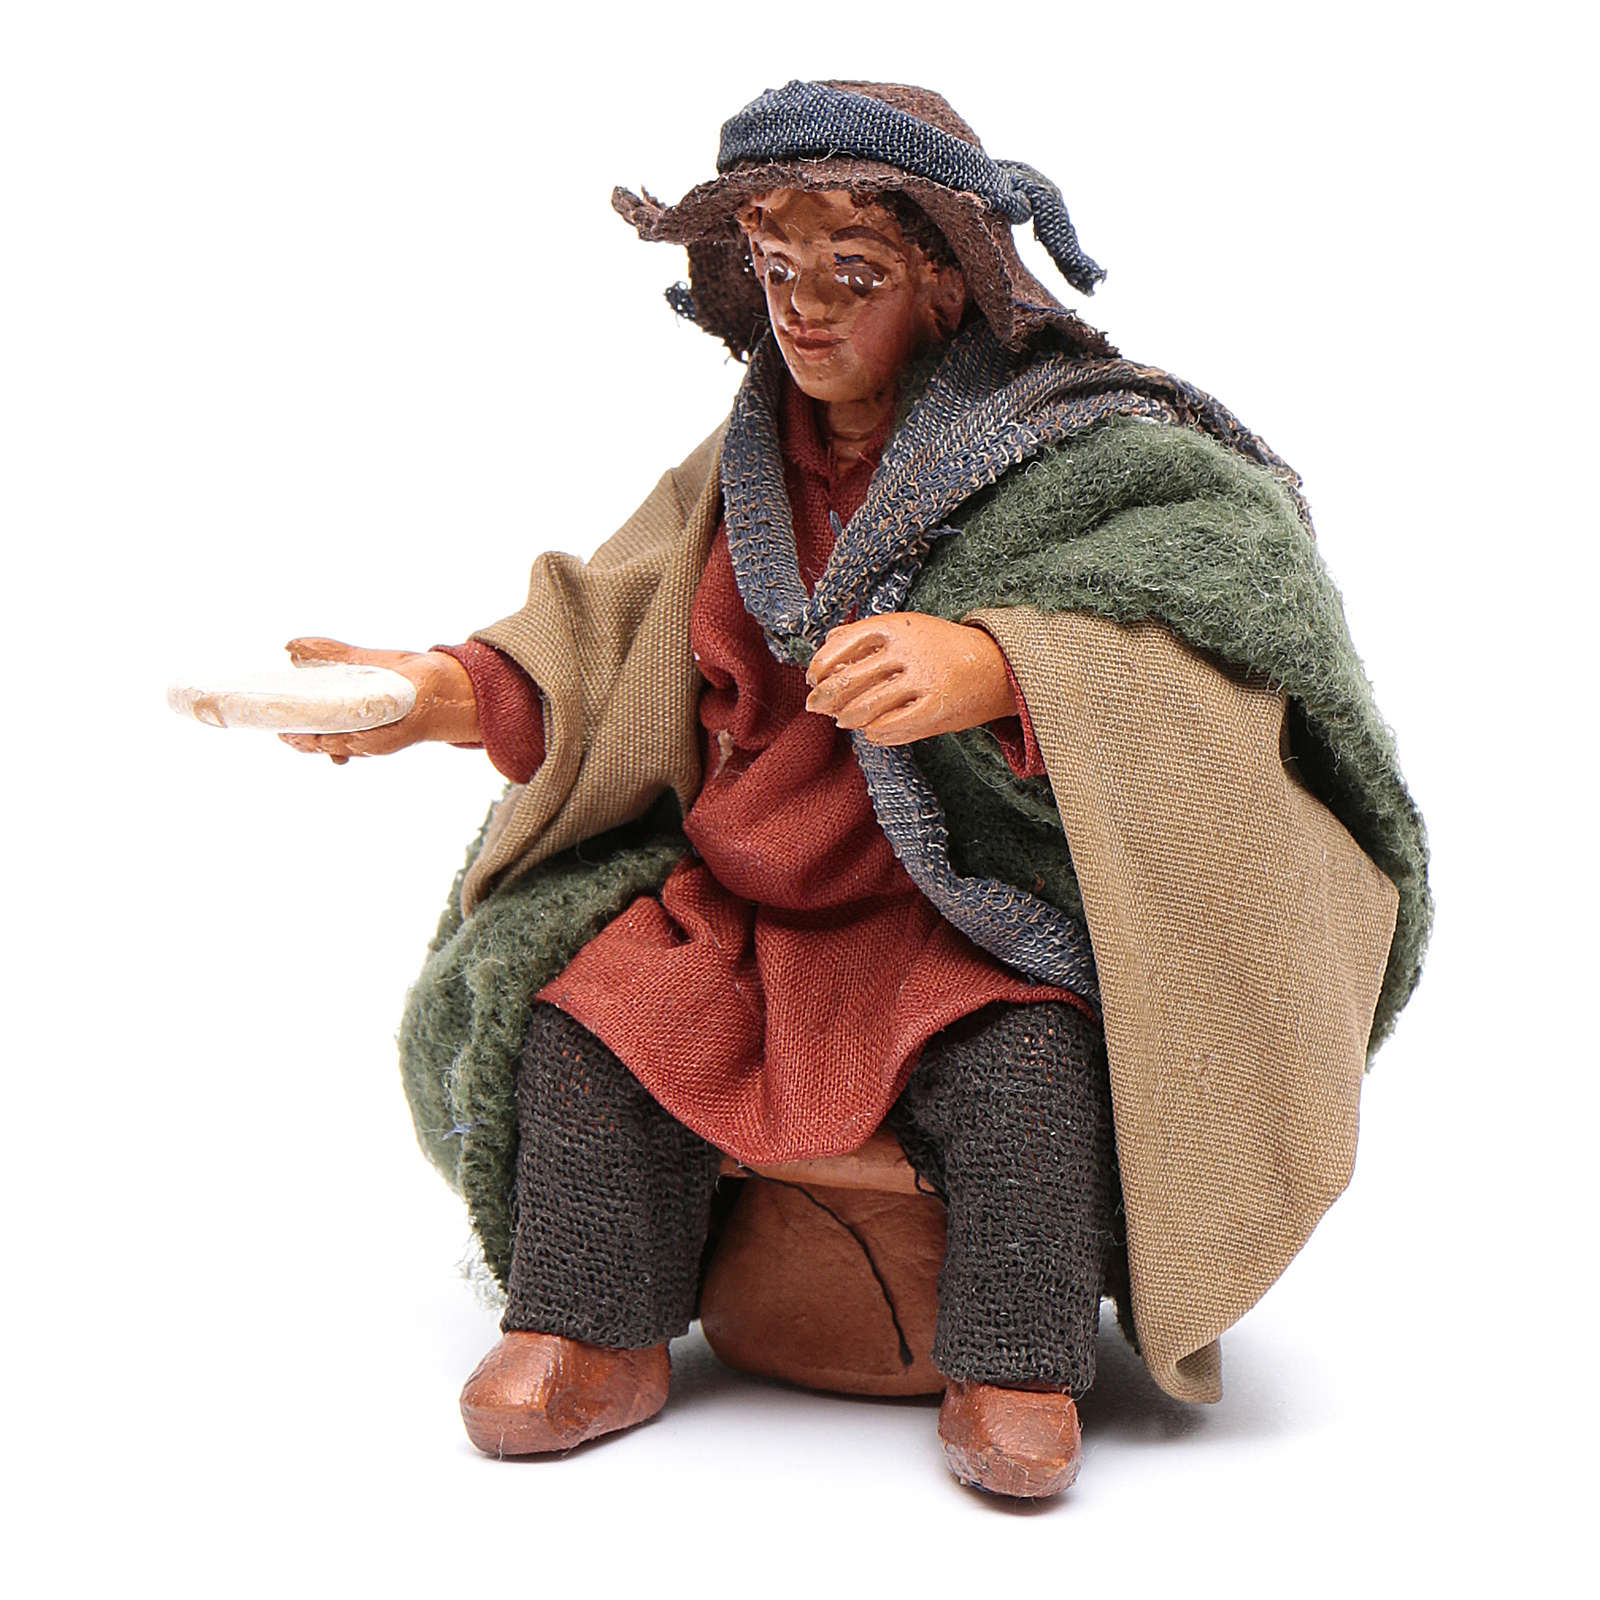 Man with dish for table 10cm, Neapolitan Nativity figurine 4